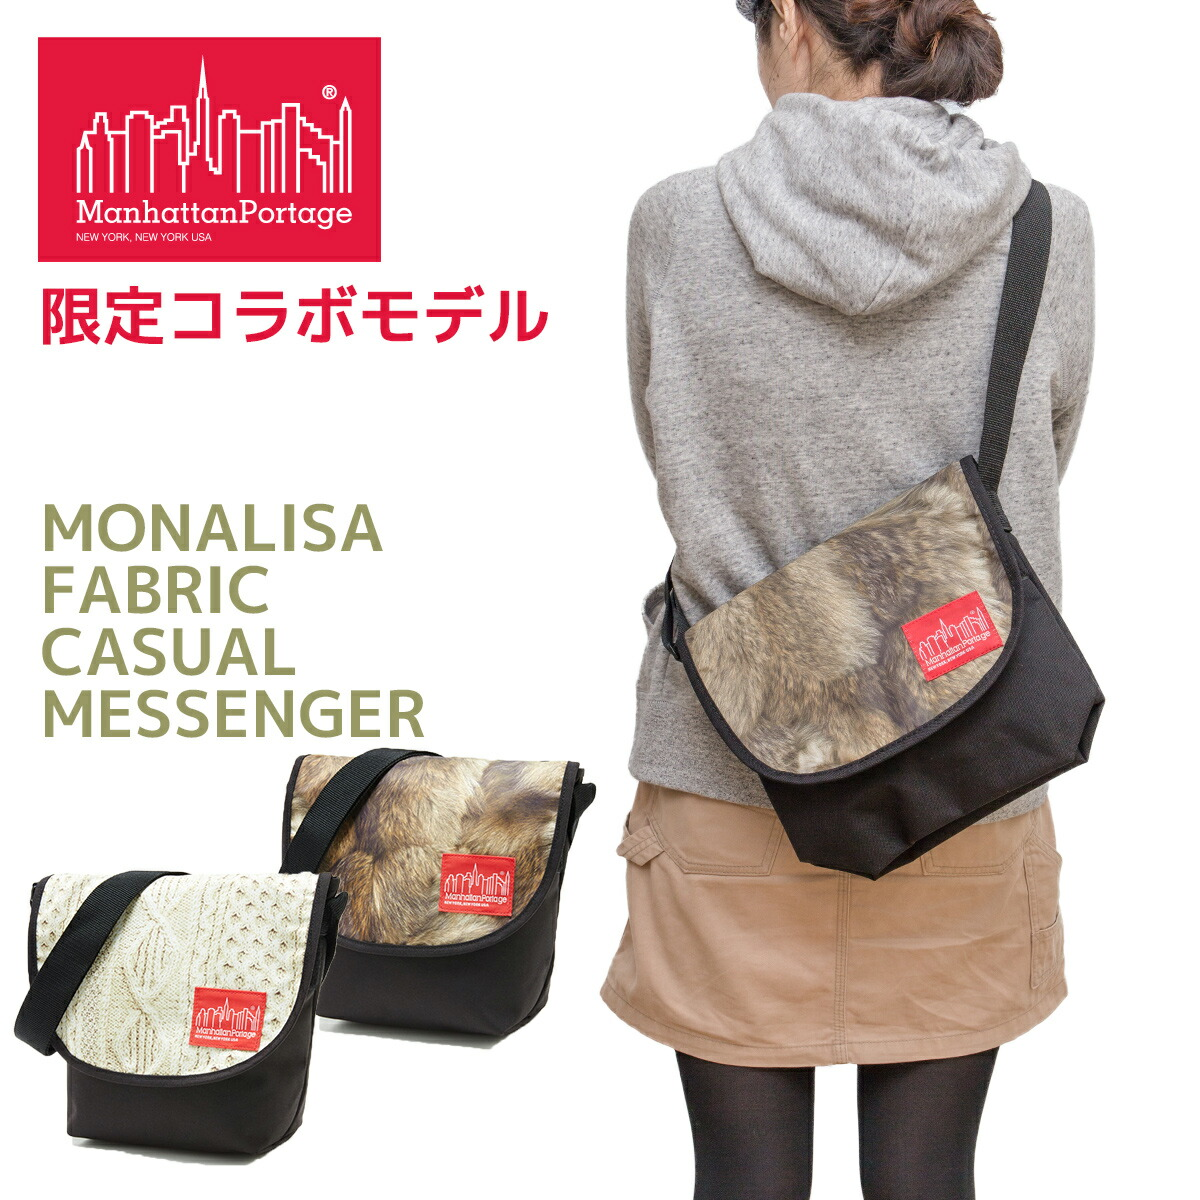 Manhattan Portage(�ޥ�ϥå���ݡ��ơ���)/��å��󥸥㡼�Хå�/MONALISA Fabric Casual Messenger Bag/MP1604MNL/�ᥤ��